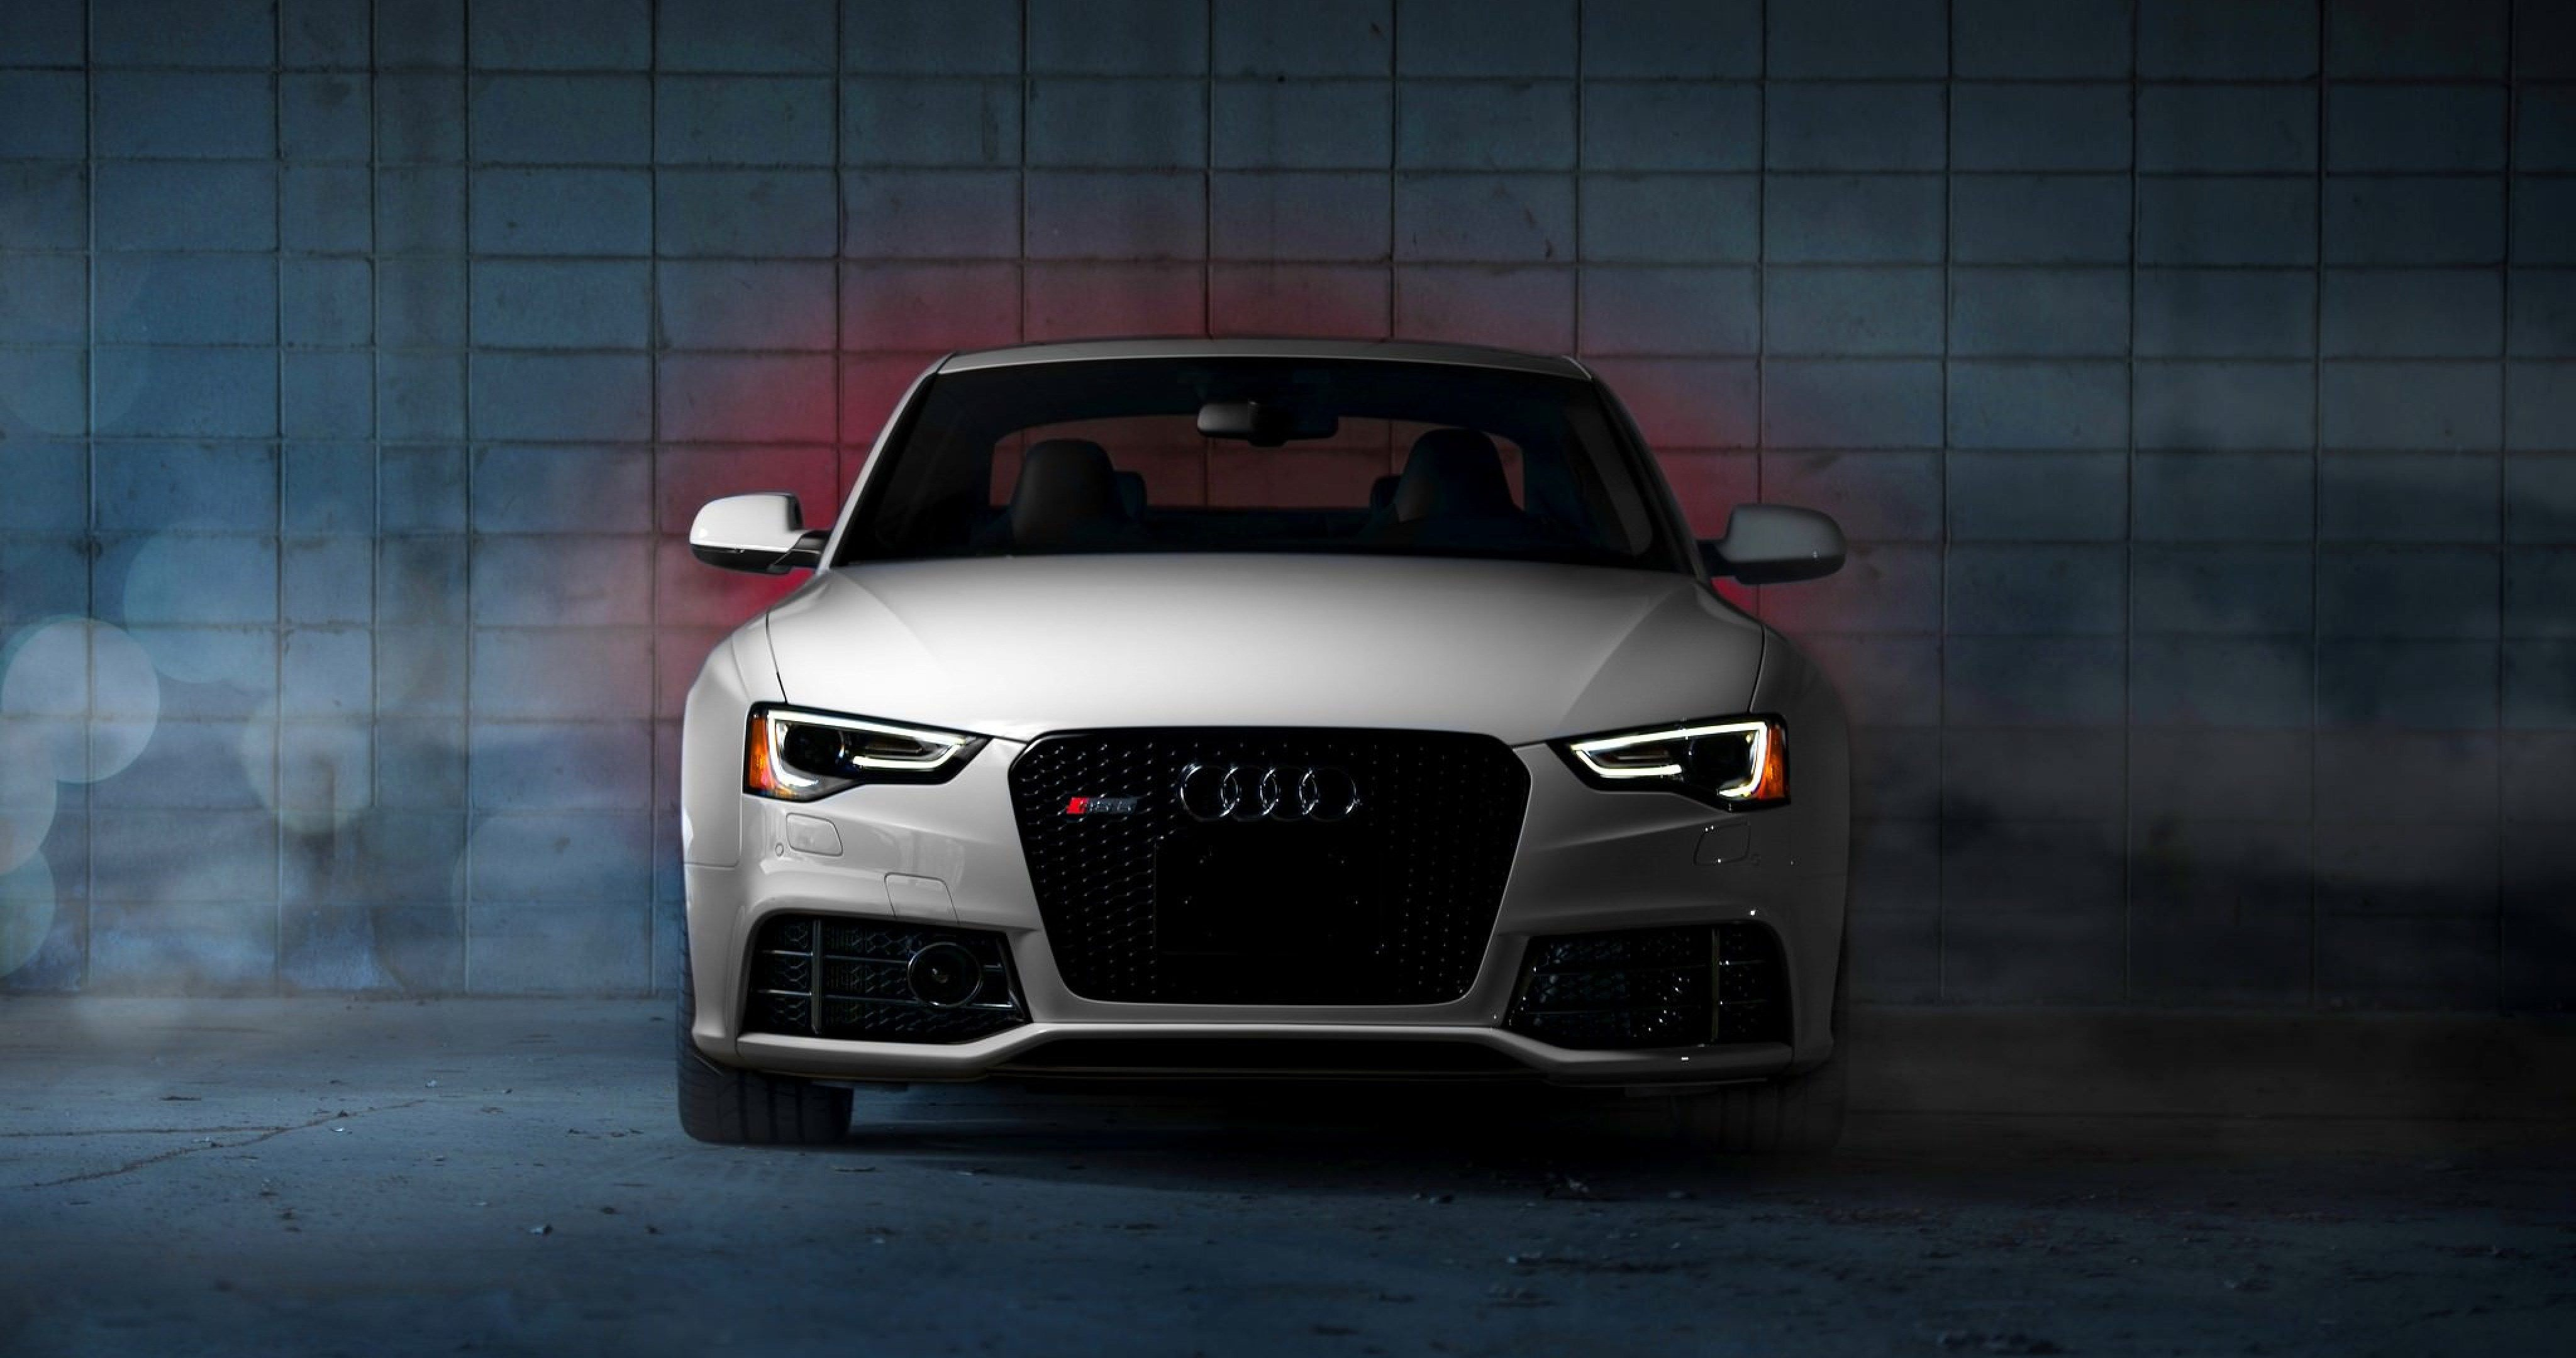 Audi D7 Ultra Hd Wallpapers Top Free Audi D7 Ultra Hd Backgrounds Wallpaperaccess